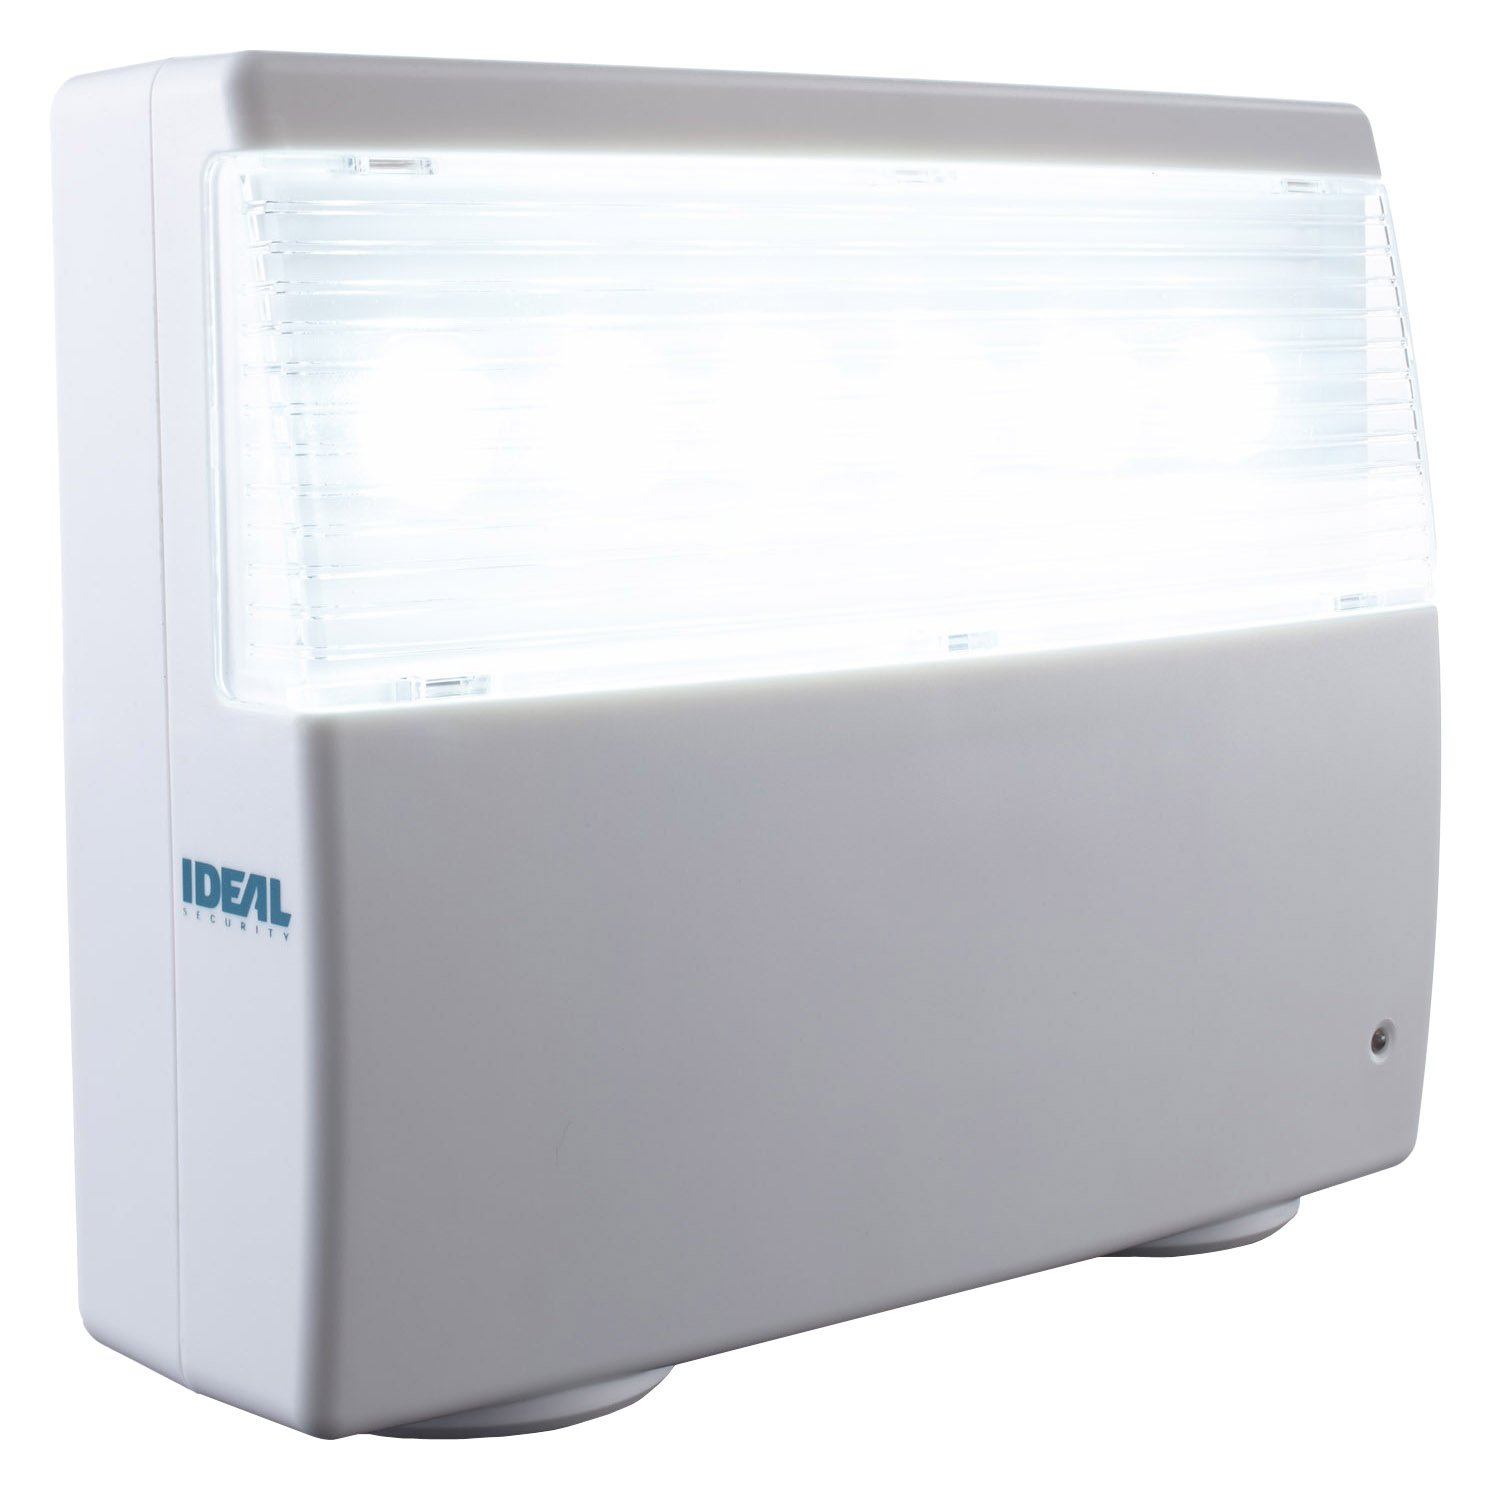 Ideal Security Inc. SK638 Home Emergency Power Failure, White 120 Lumens LED, Up to 16 Hours of Light, No wiring